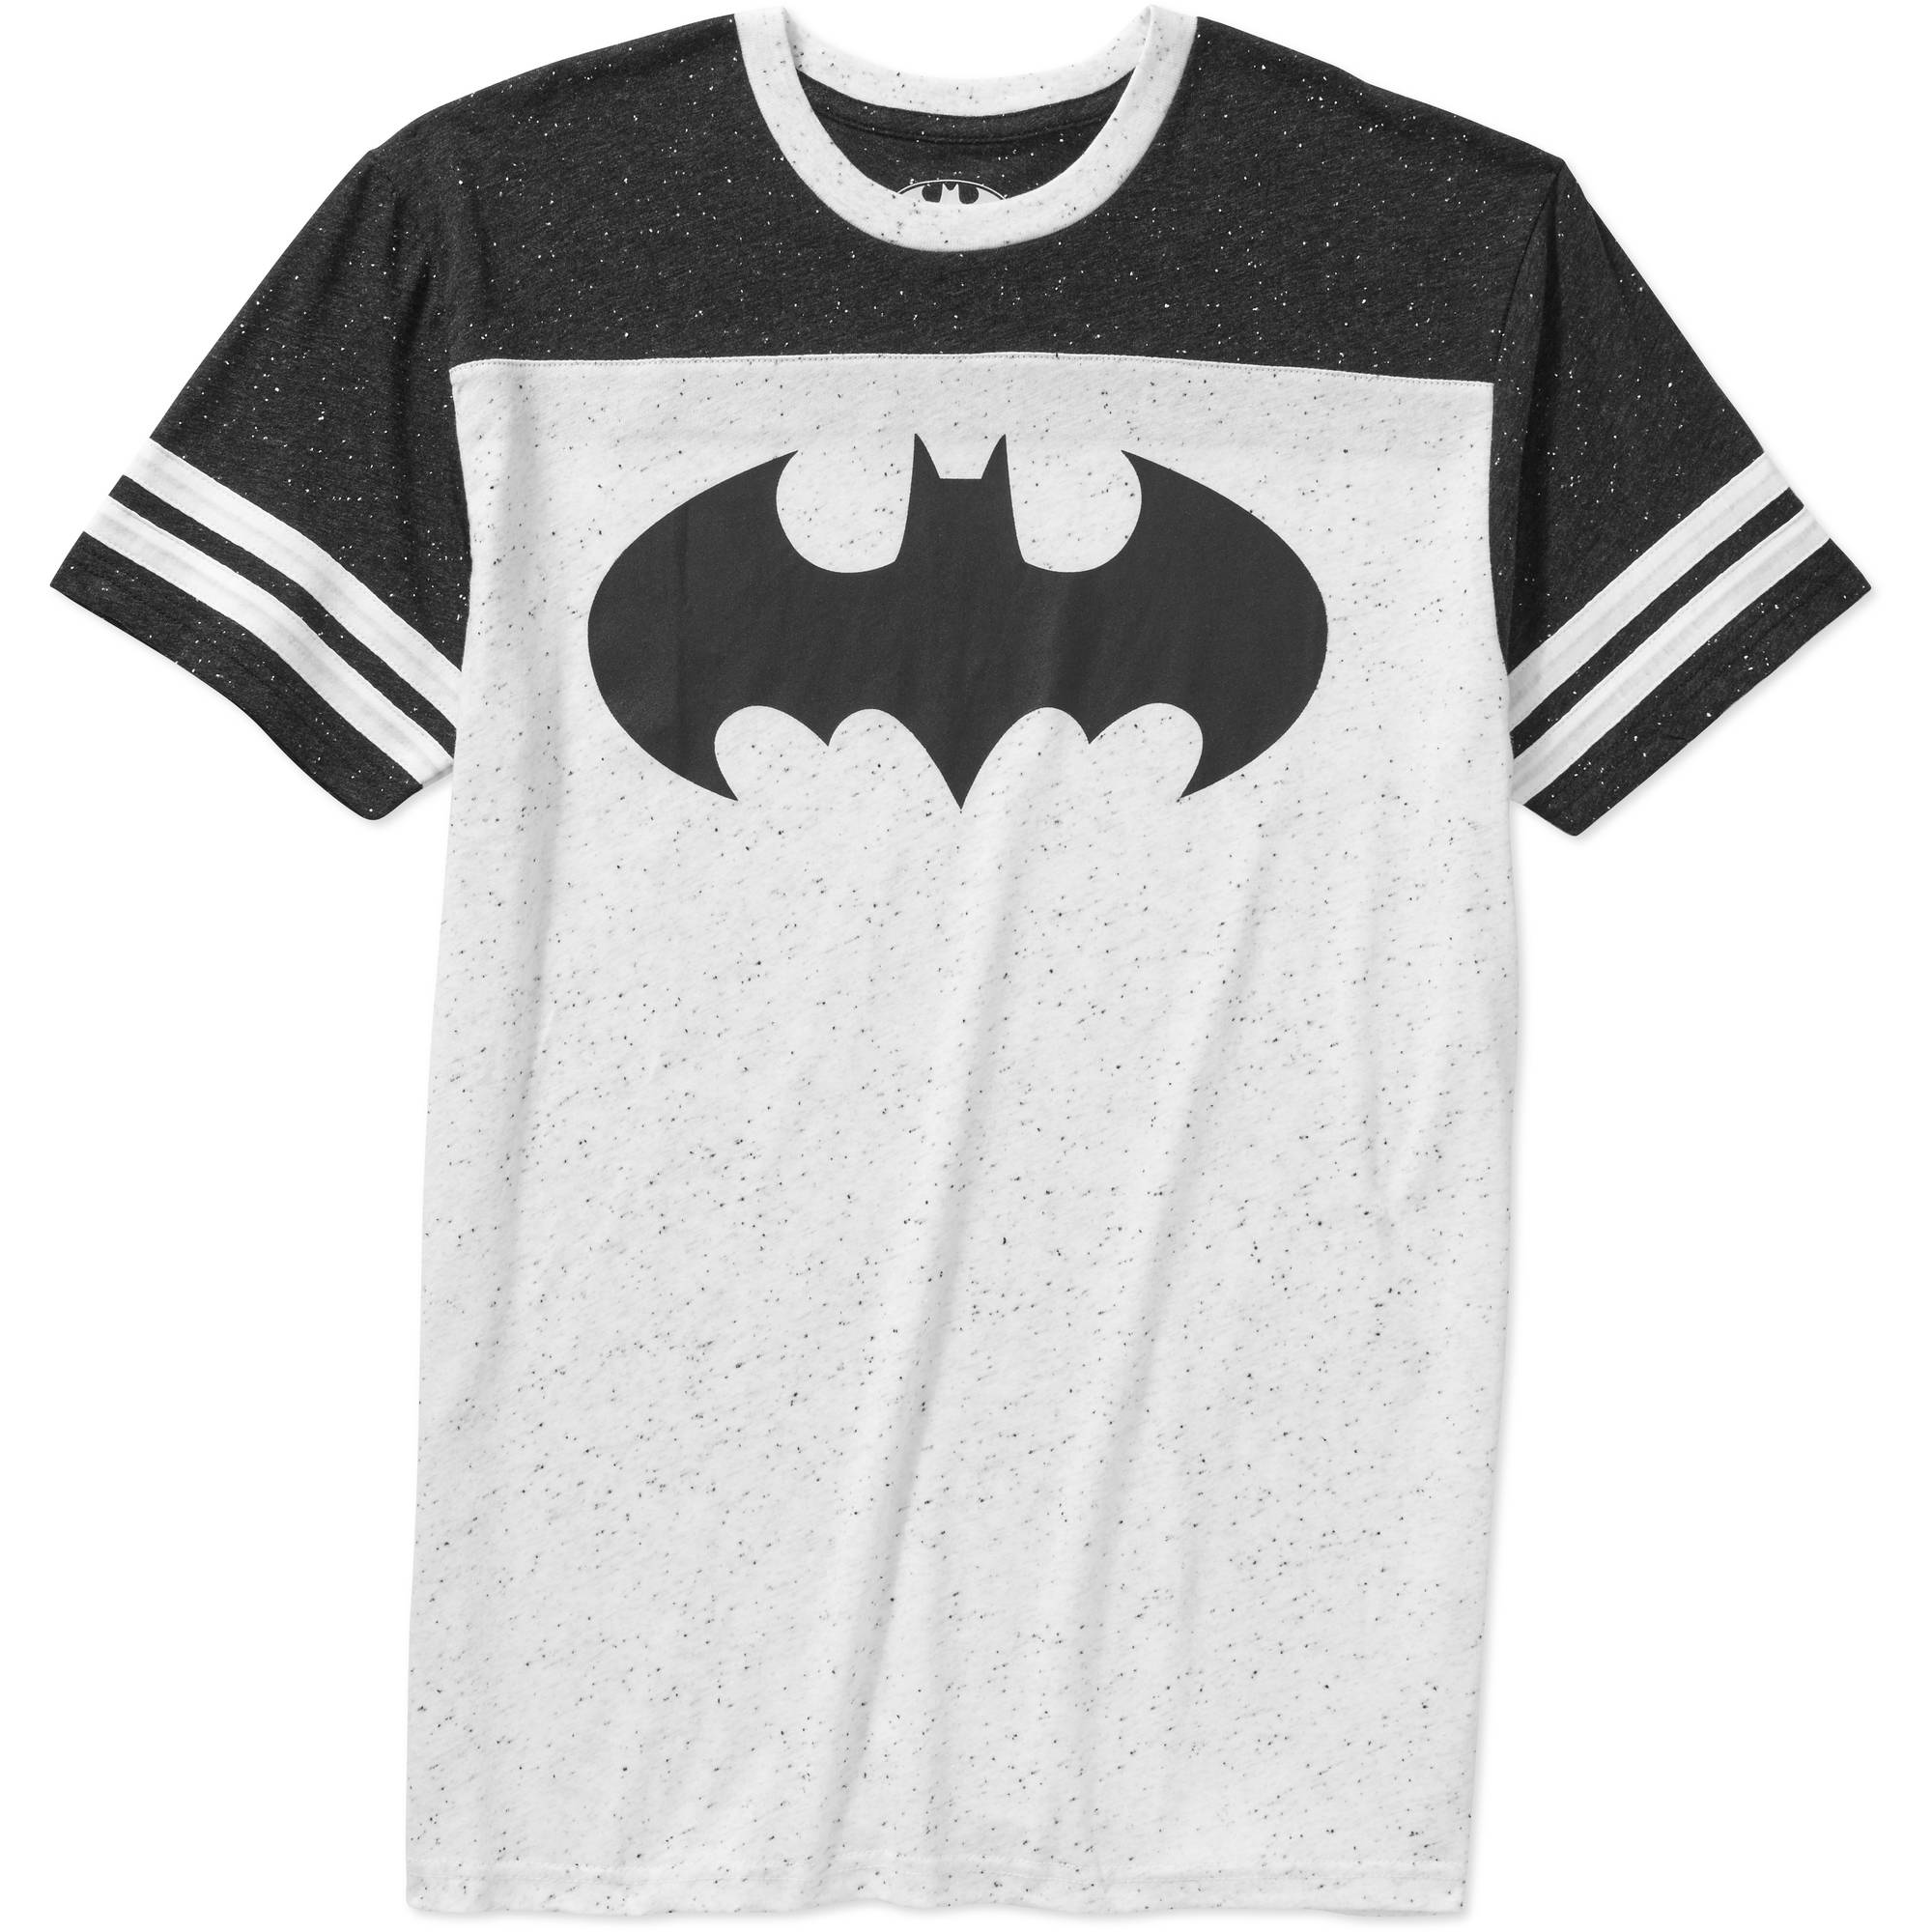 Batman Logo Black and White Men's Knit Ringer Sleeve Graphic Tee